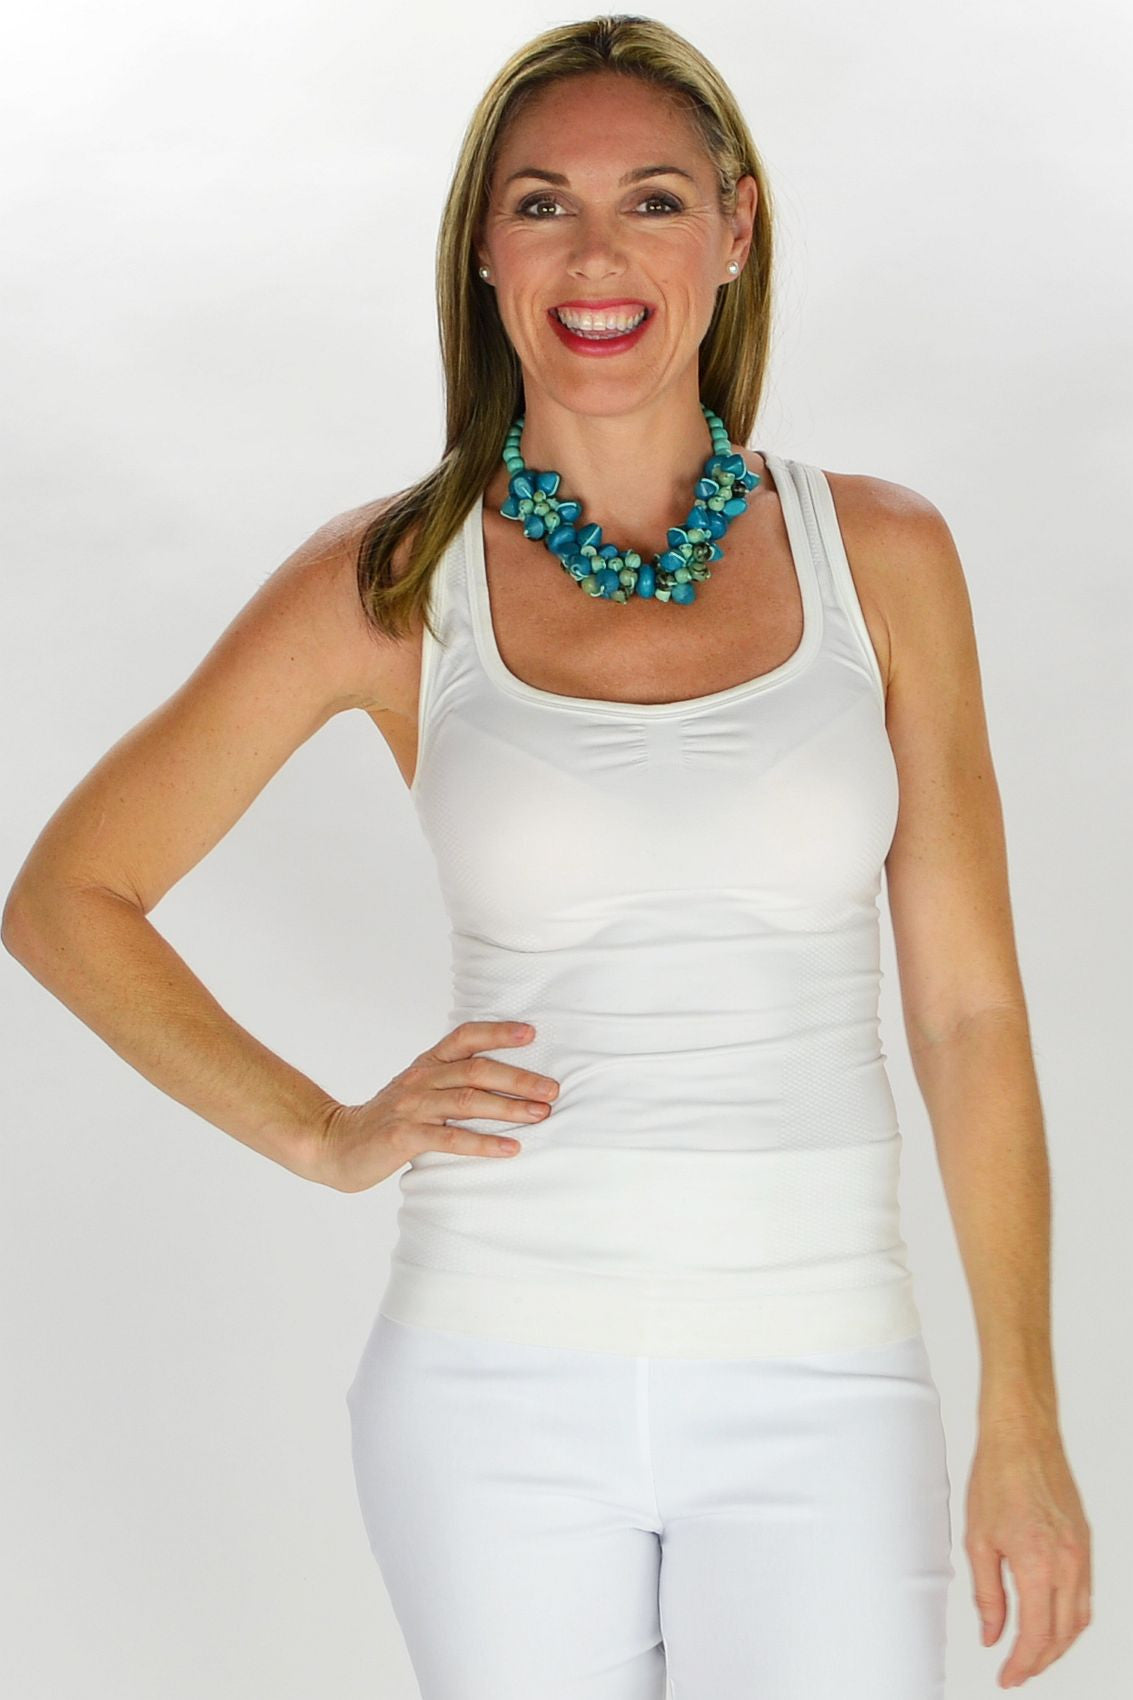 Short Aqua Beads Necklace - at I Love Tunics @ www.ilovetunics.com = Number One! Tunics Destination